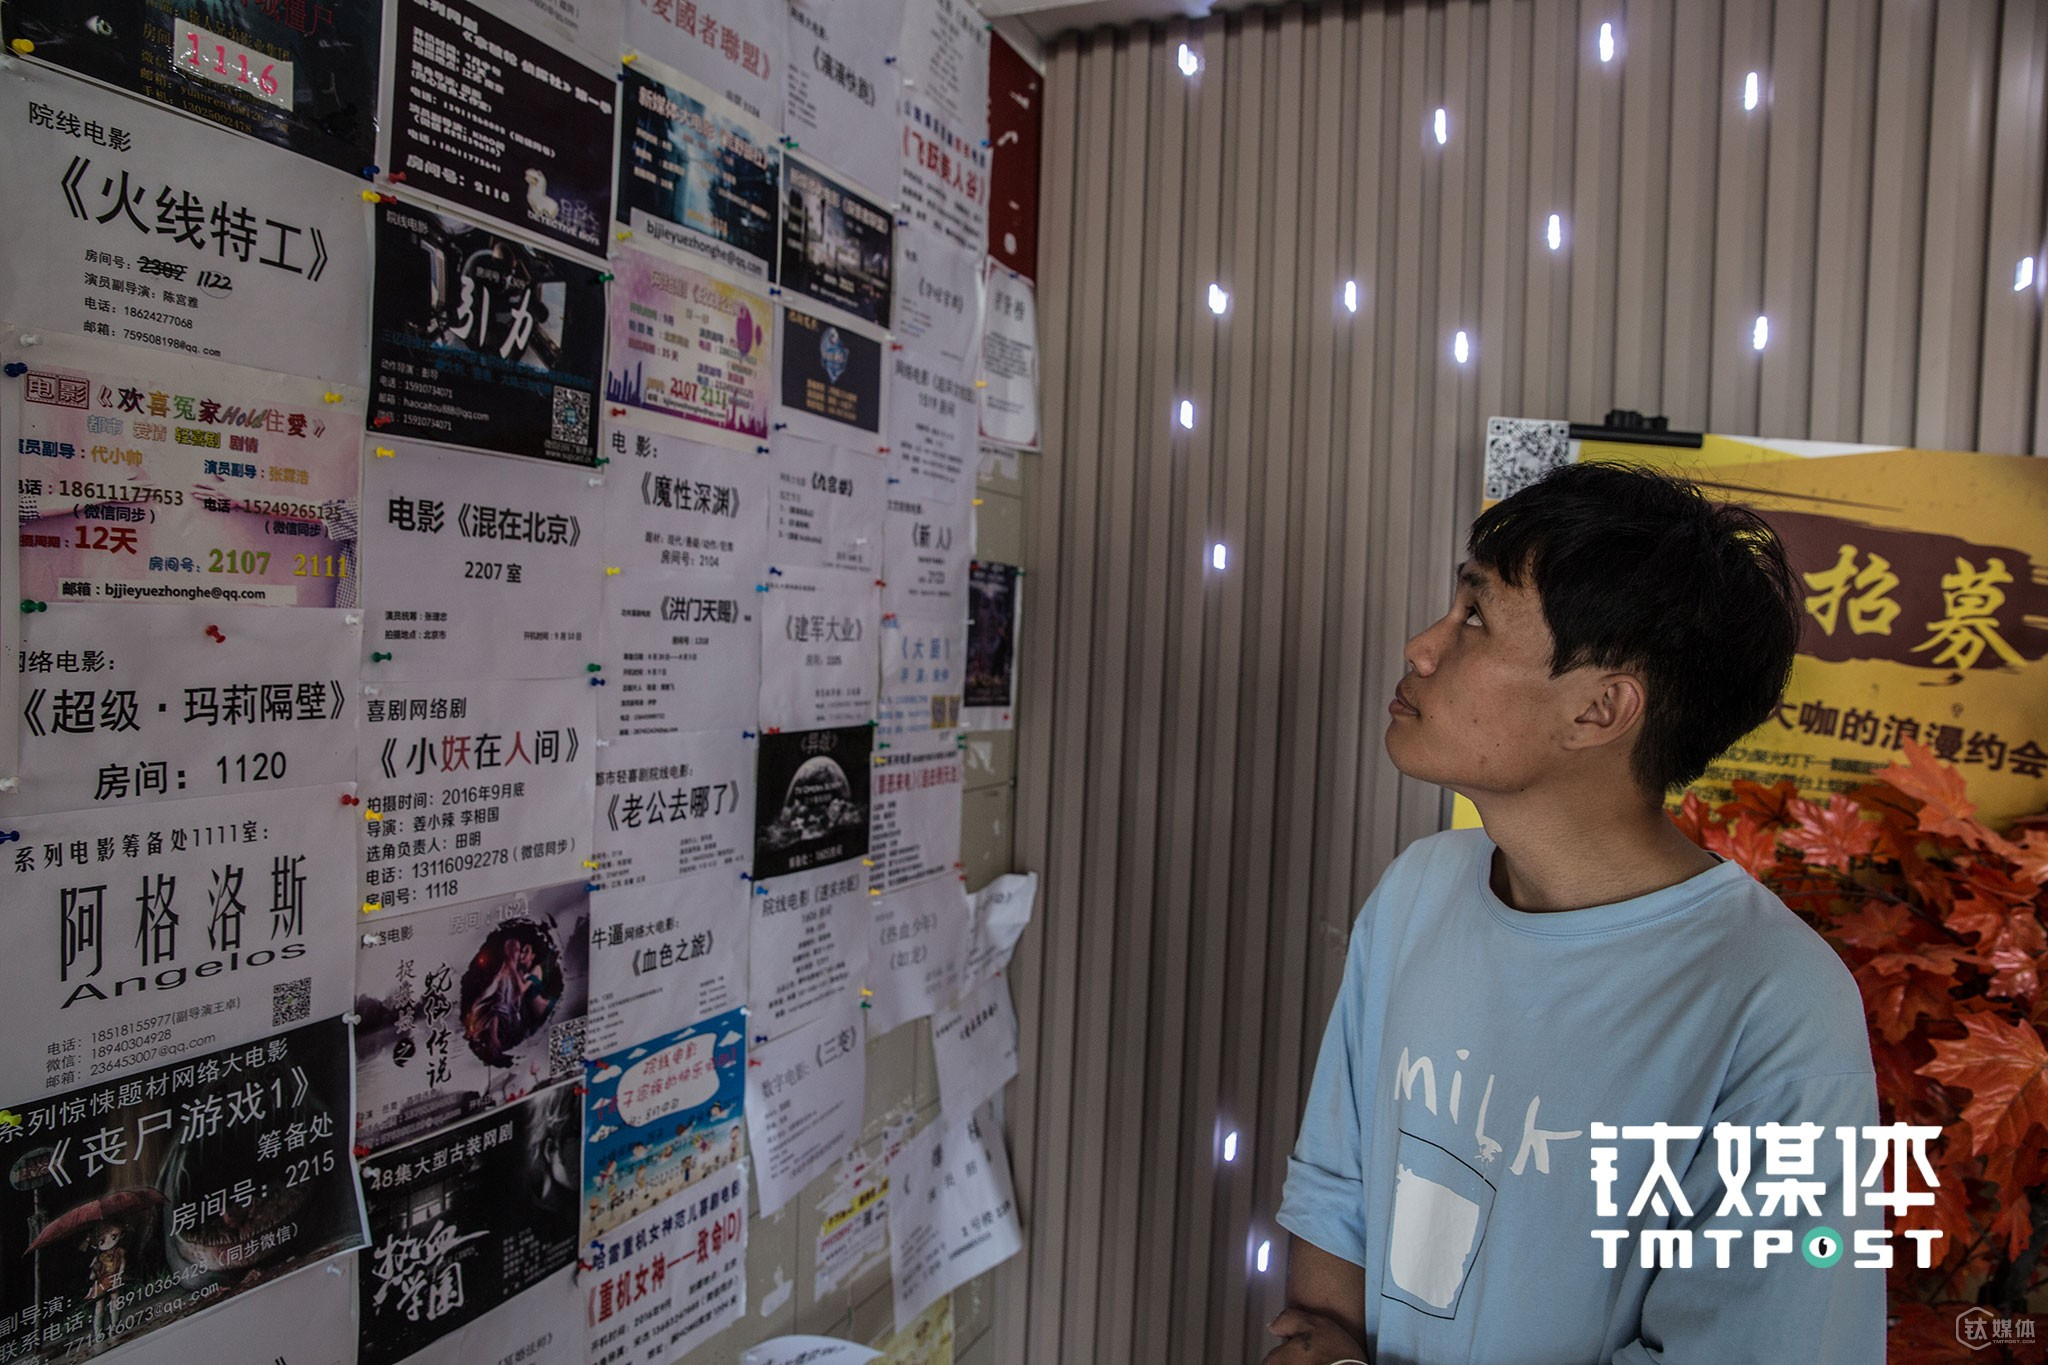 """It has been two years since Li luqi came to Beijing. He learnt stage plays for a short while, and played bit roles for most time. """"I love acting, but those who are handsome, beautiful or who graduated from professional schools often get more chances. I, however, have little choices."""" As an actor, he thought it unnecessary to think too much. """"Everybody who waits at the gate of Beijing Film Studio dreams of becoming as famous as Wang Baoqiang. I once heard that someone even went crazy after getting no role to play for a long while. So many people want to become famous in China, but not everyone could become one. Why not just go step by step, play some bit roles first. At least you are doing something you love,"""" he told TMTpost."""